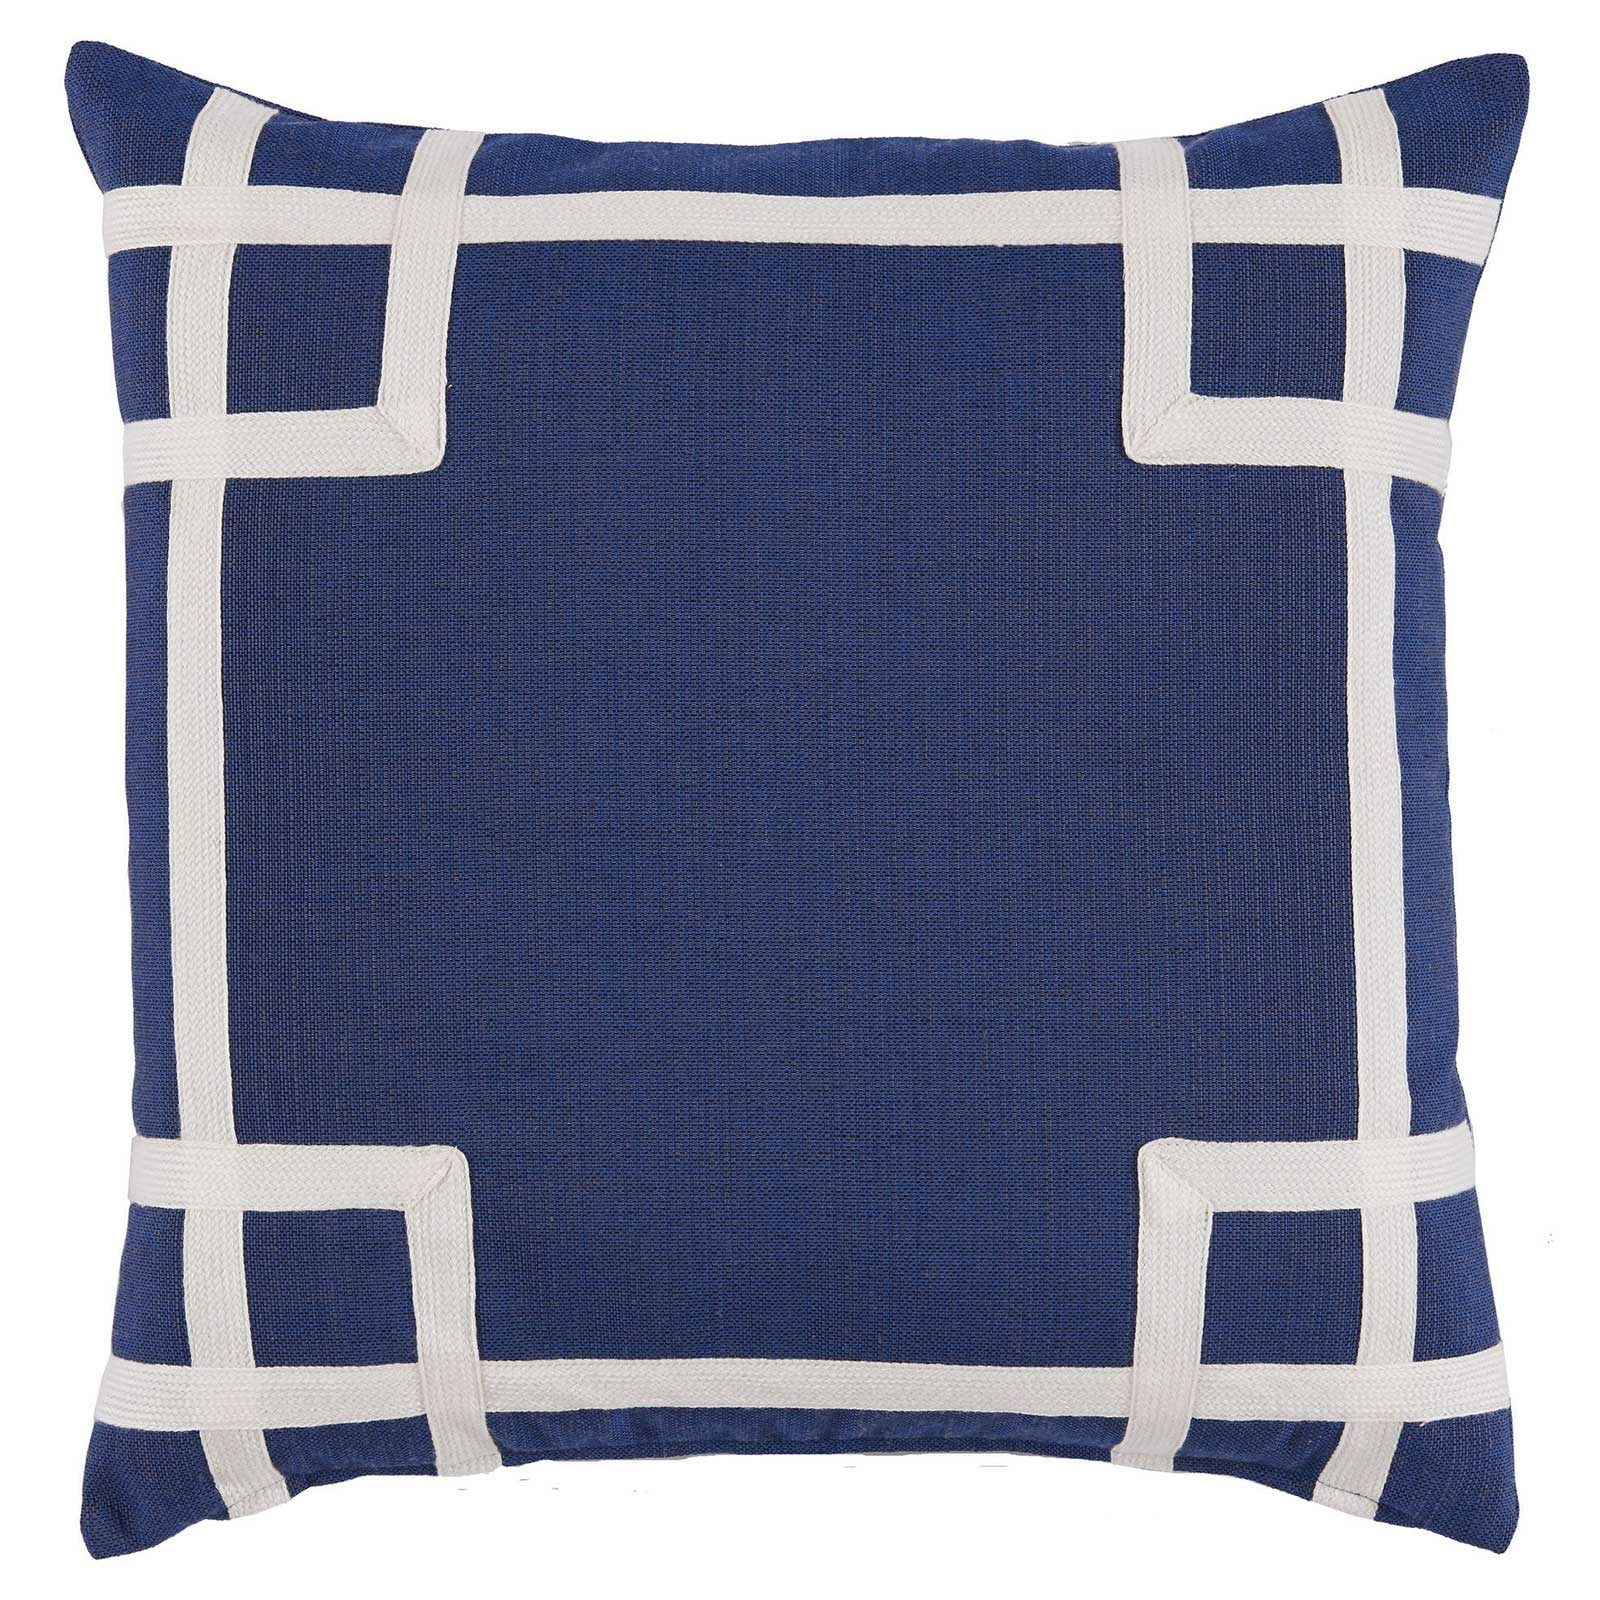 Paton Classic Outdoor Navy Trellis Trim Pillow - 20x20